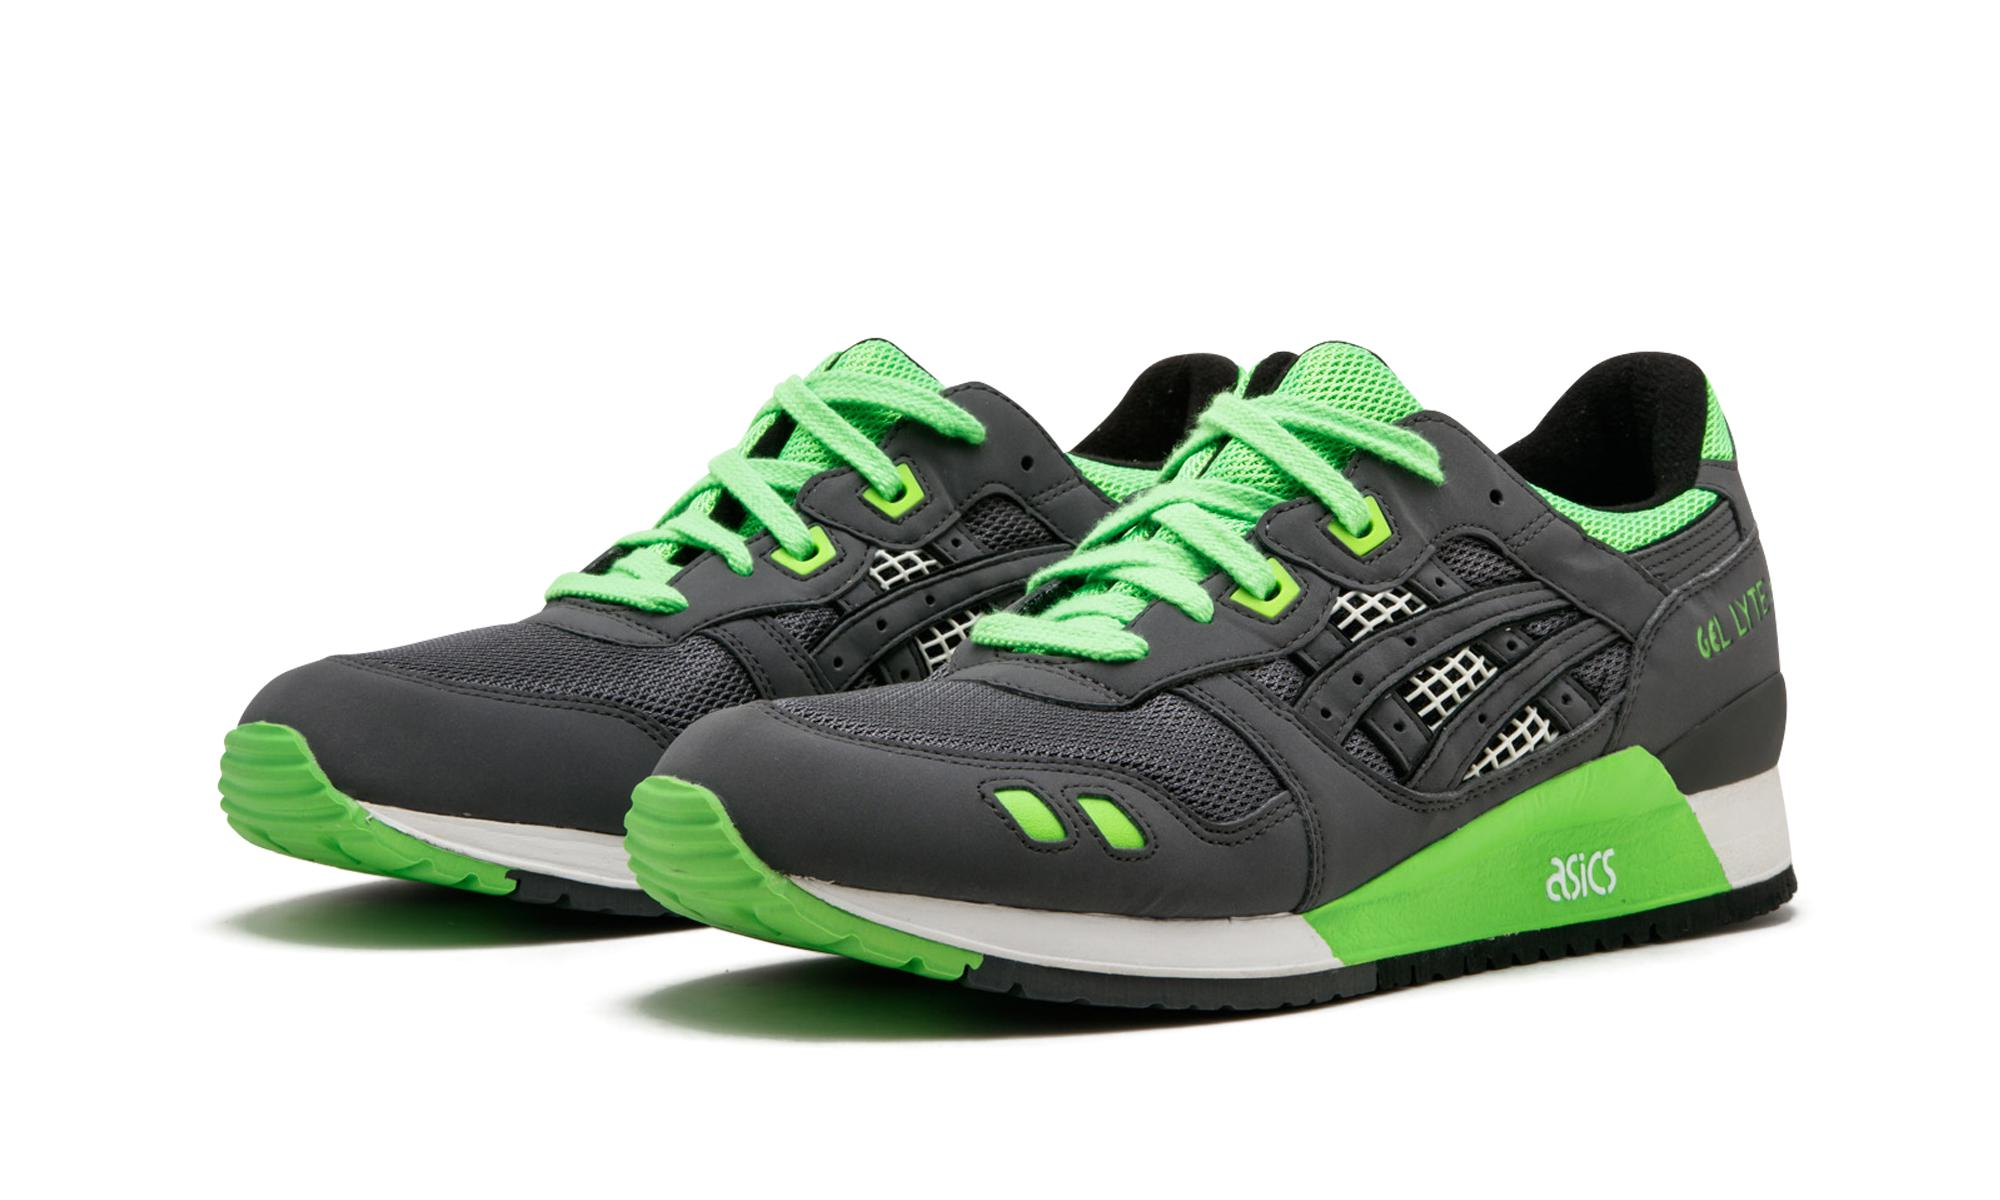 Asics - Green Gel-lyte Iii for Men - Lyst. View fullscreen a2240bee0f0e